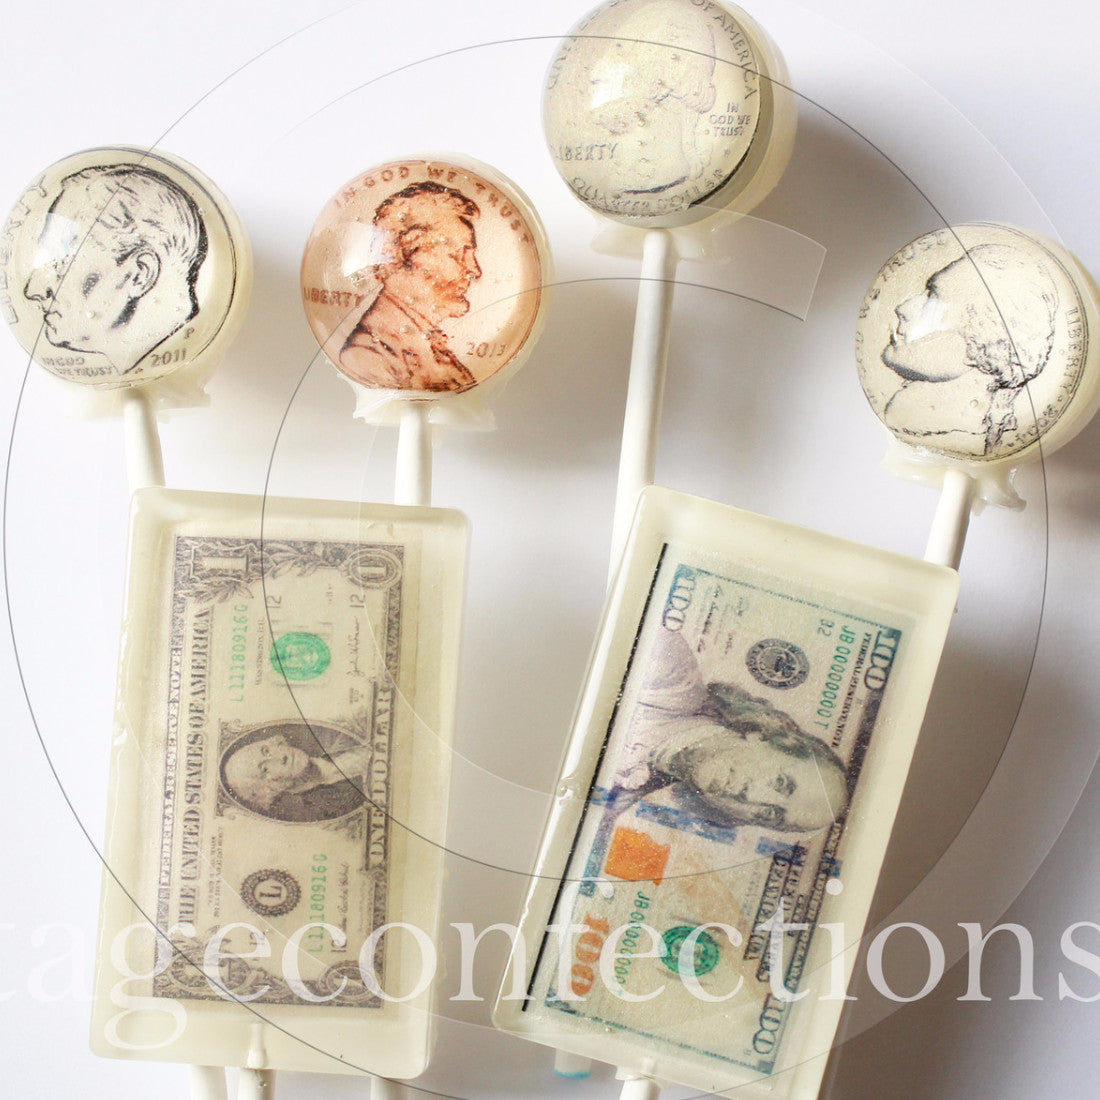 Tax time US coins and currency edible art lollipops by I Want Candy!